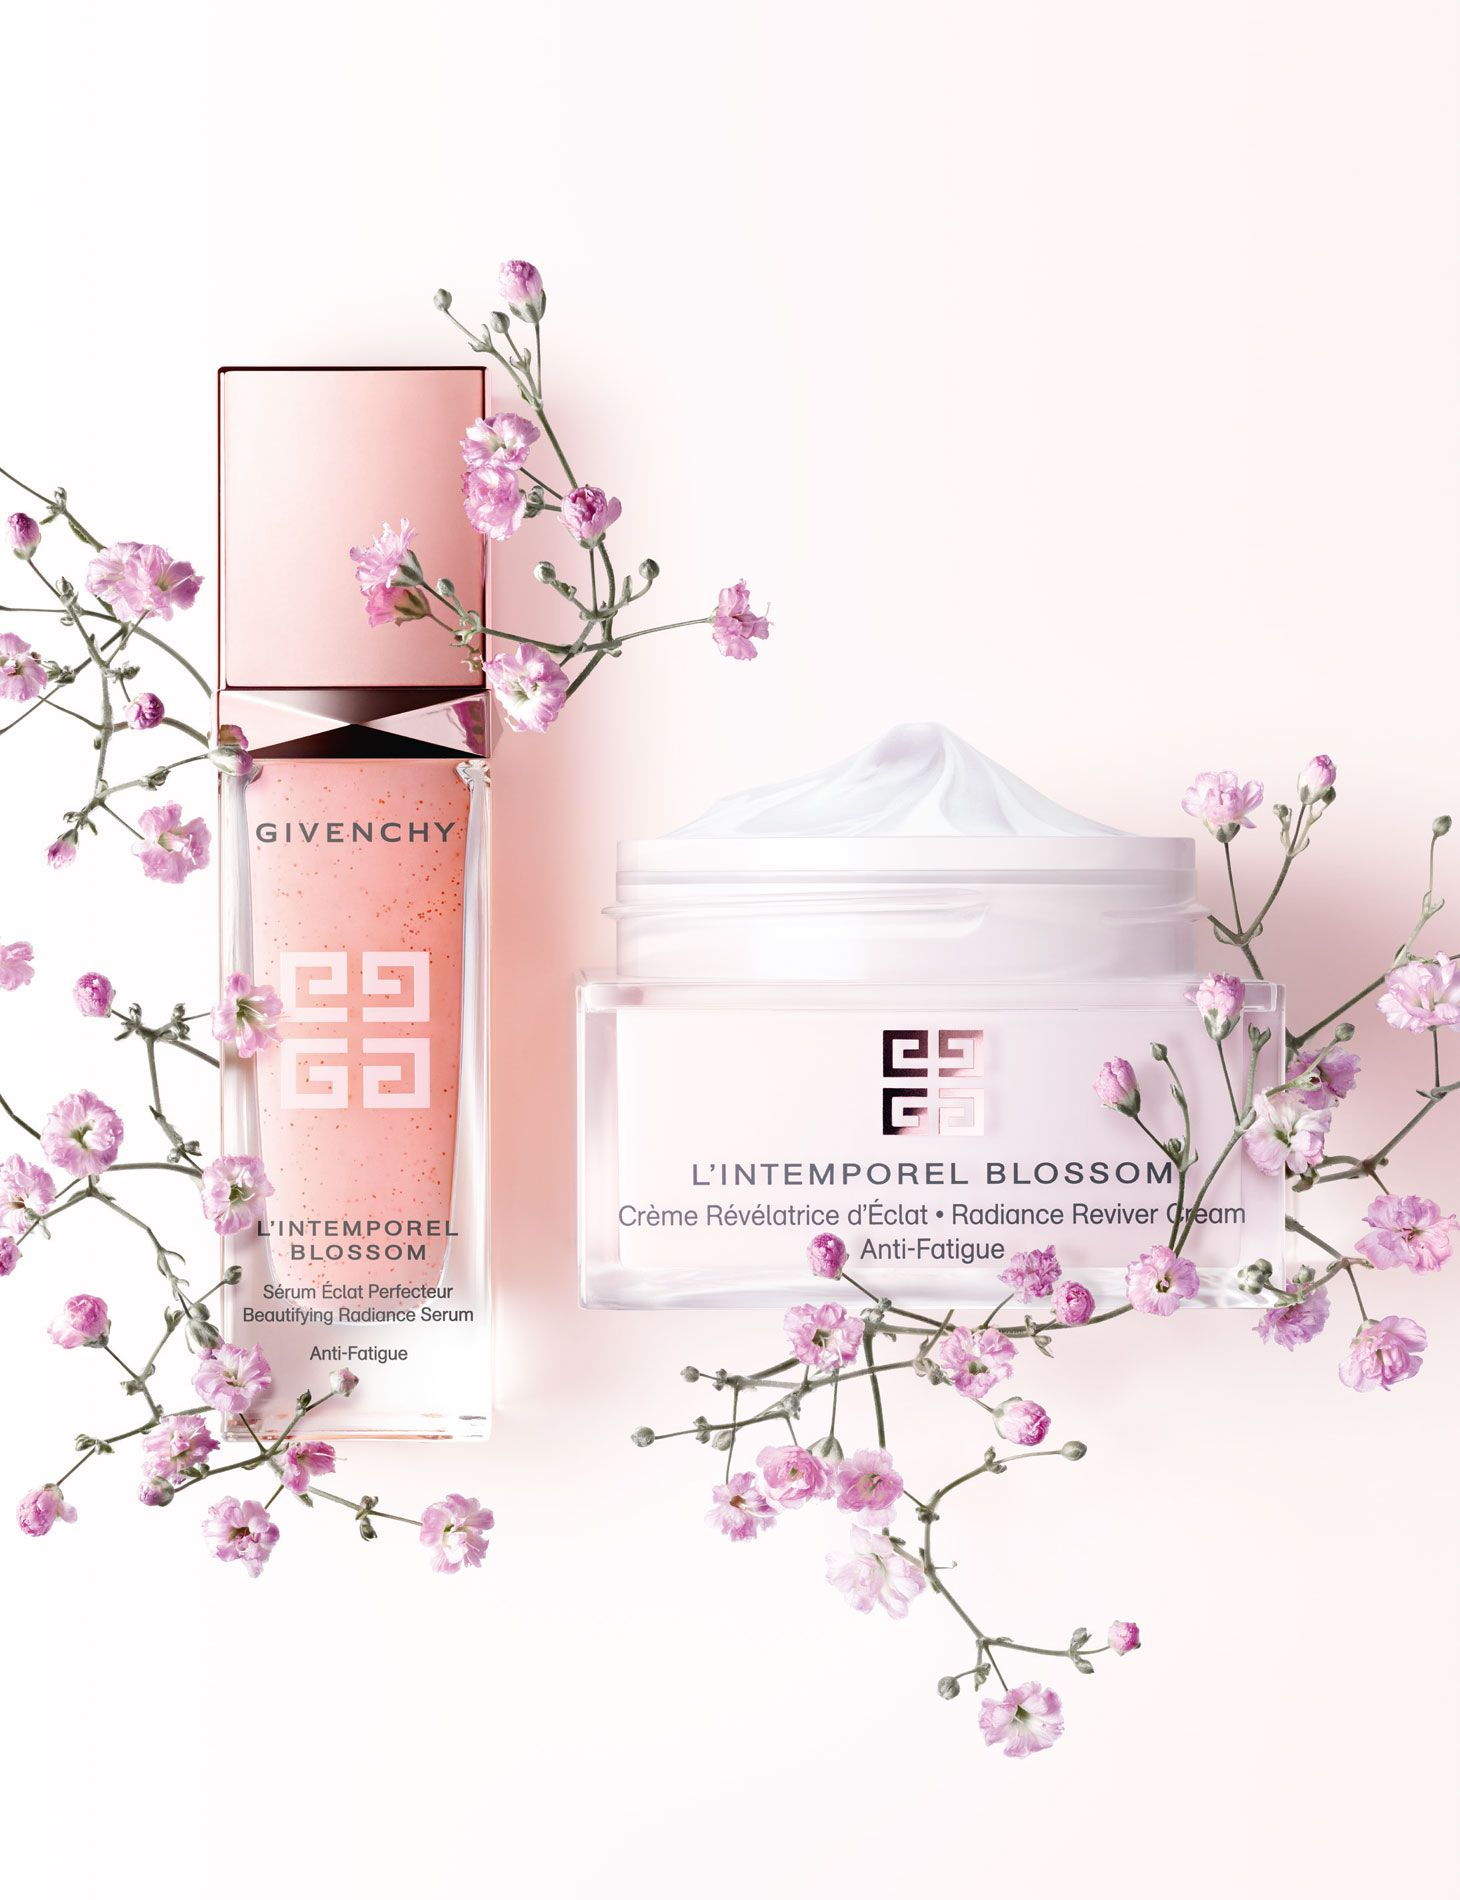 Photo of Givenchy L'Intemporel Blossom